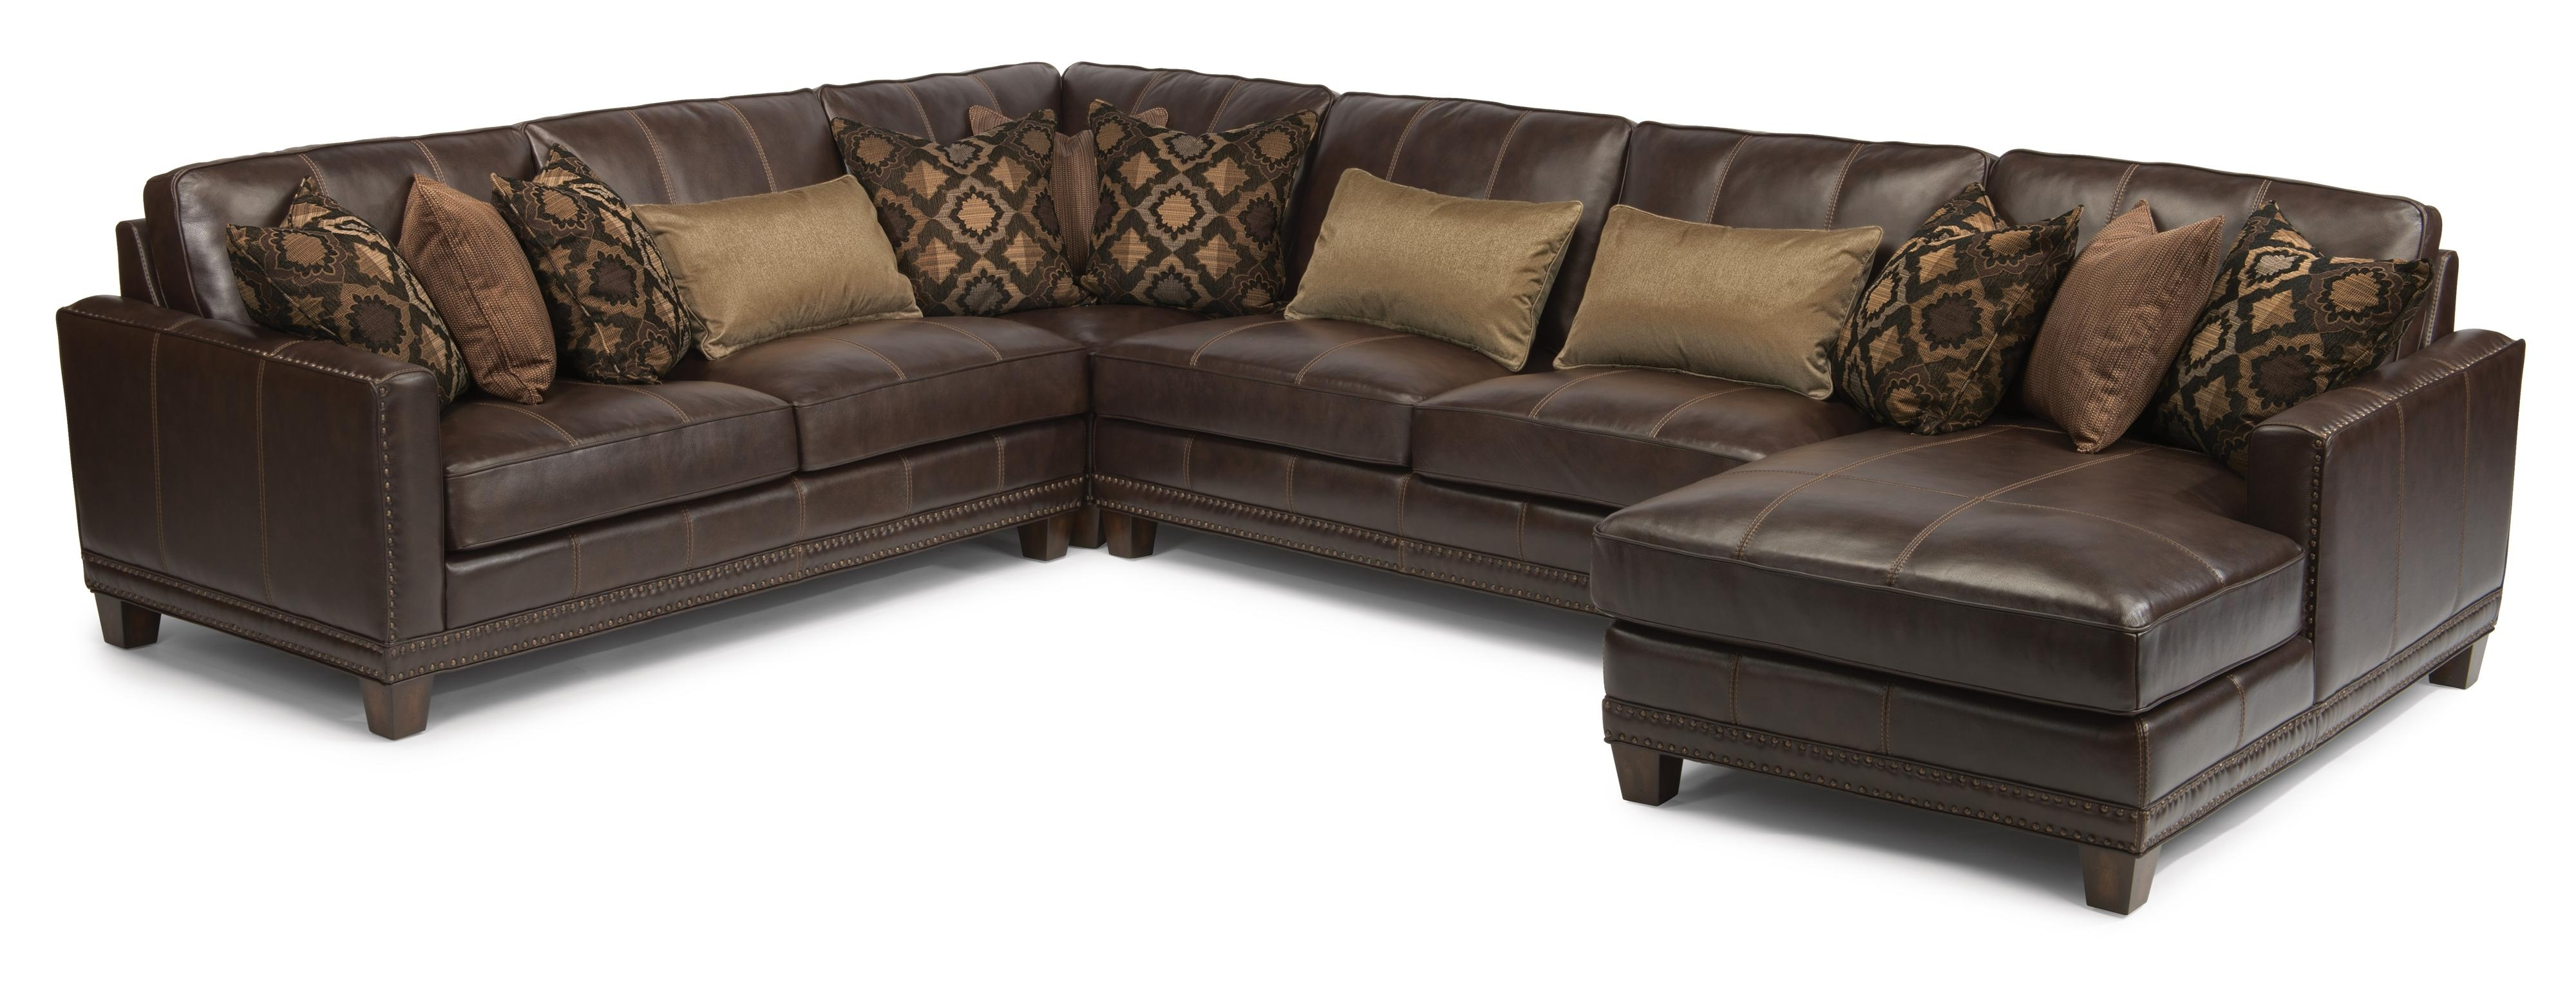 Royal Furniture Sectional Sofas For Current Flexsteel Latitudes – Port Royal Transitional Four Piece Sectional (View 18 of 20)